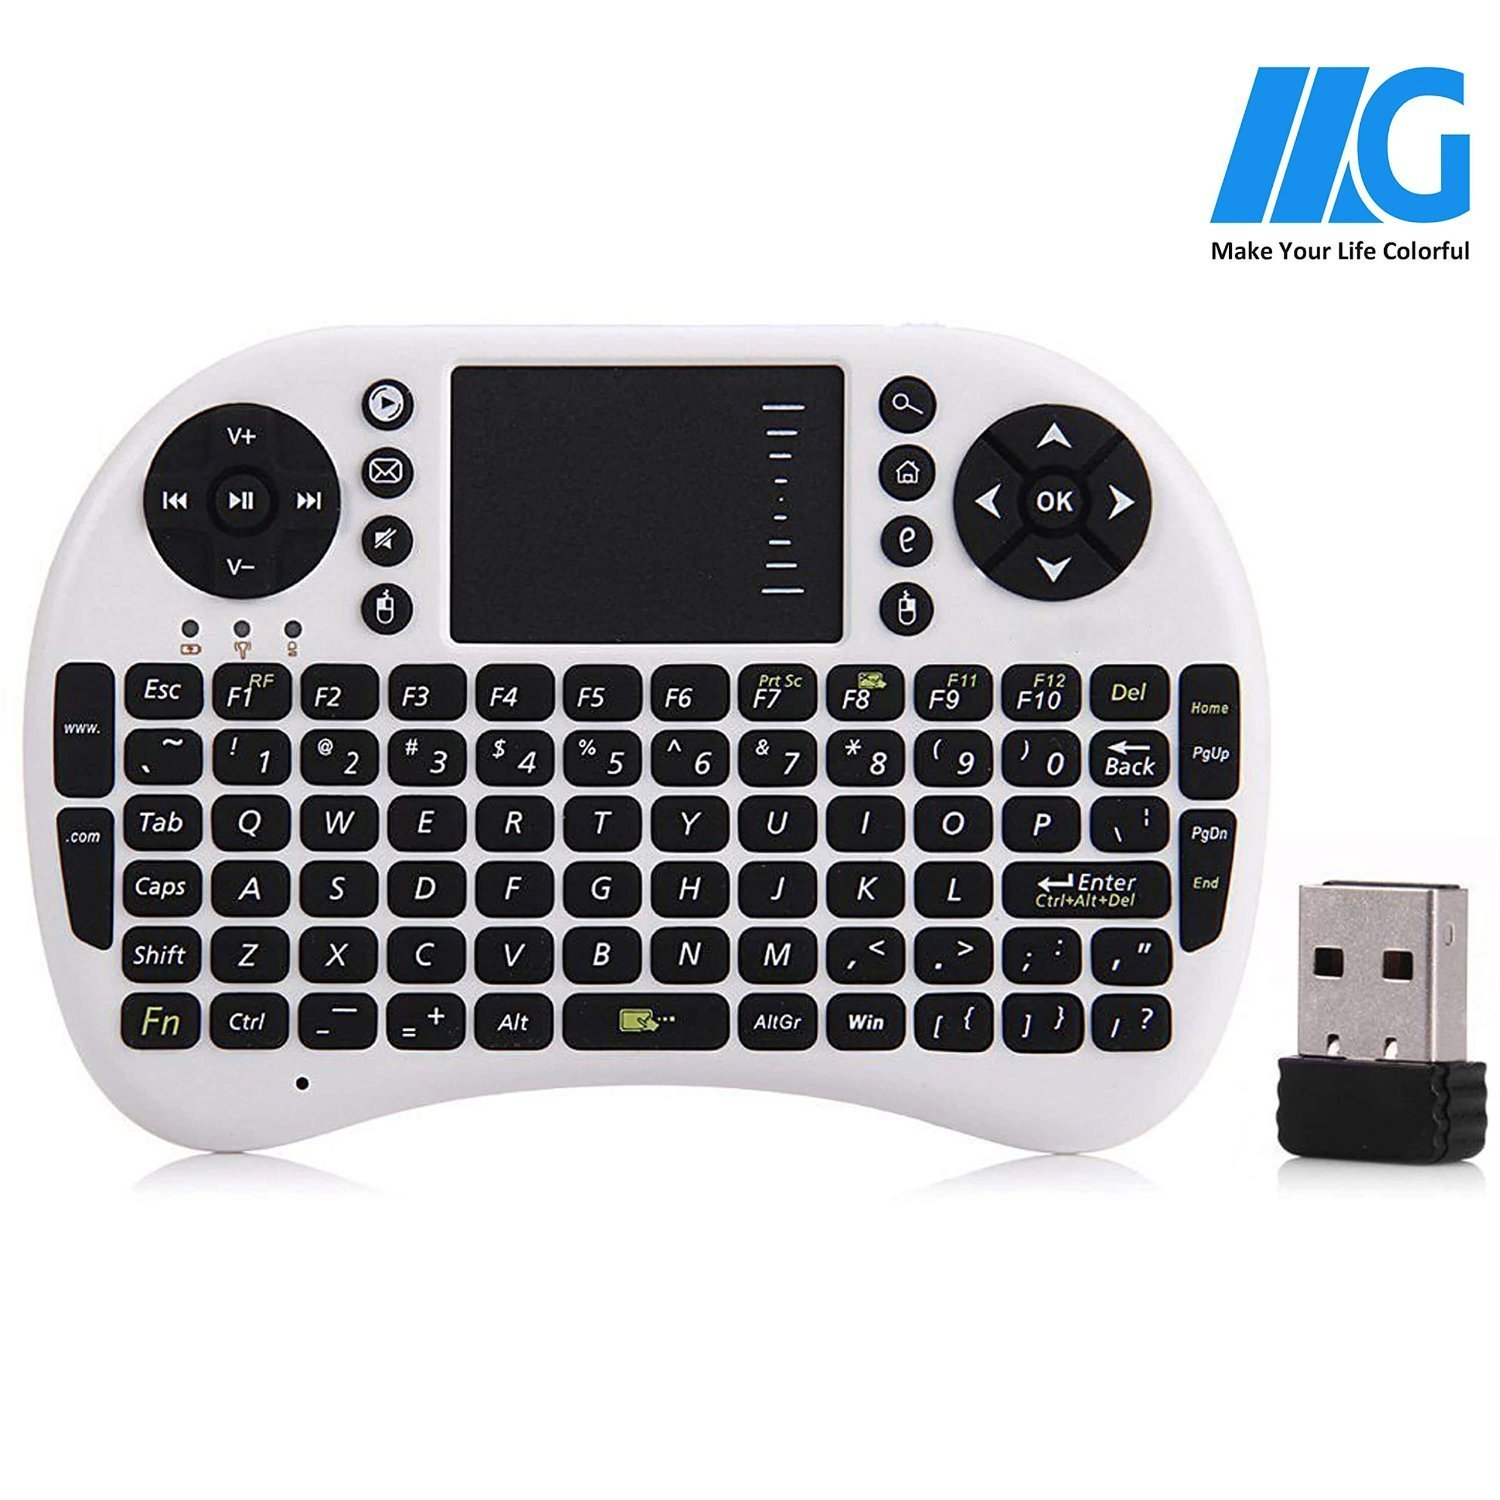 Freedom Pro Bluetooth Keyboard Android Driver: Top 10 Best Wireless Keyboard For XBMC Android TV Box 2019-2020 On Flipboard By Mariah Lolas